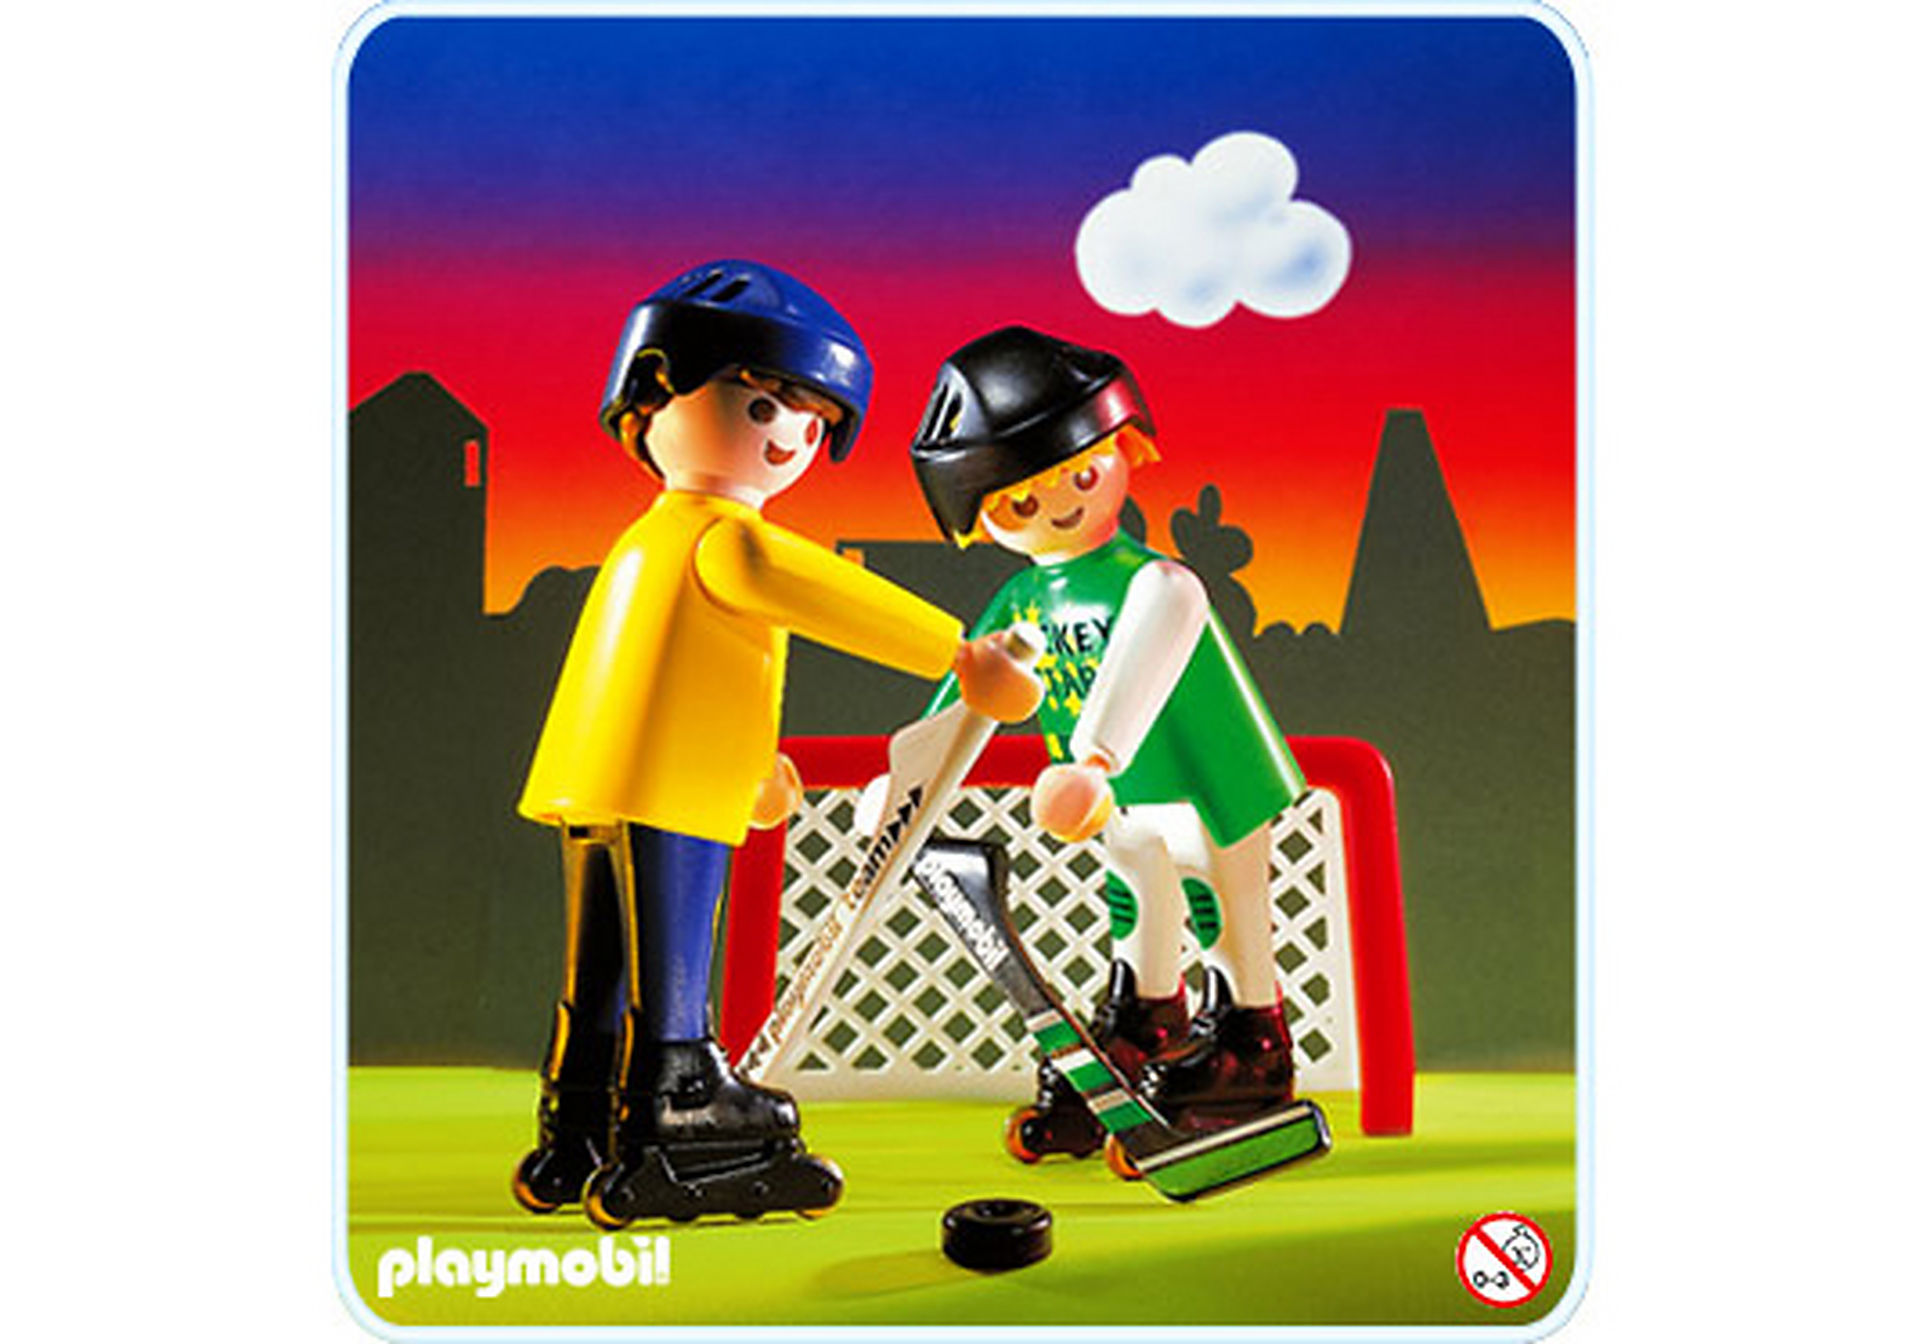 http://media.playmobil.com/i/playmobil/3869-A_product_detail/Streethockey